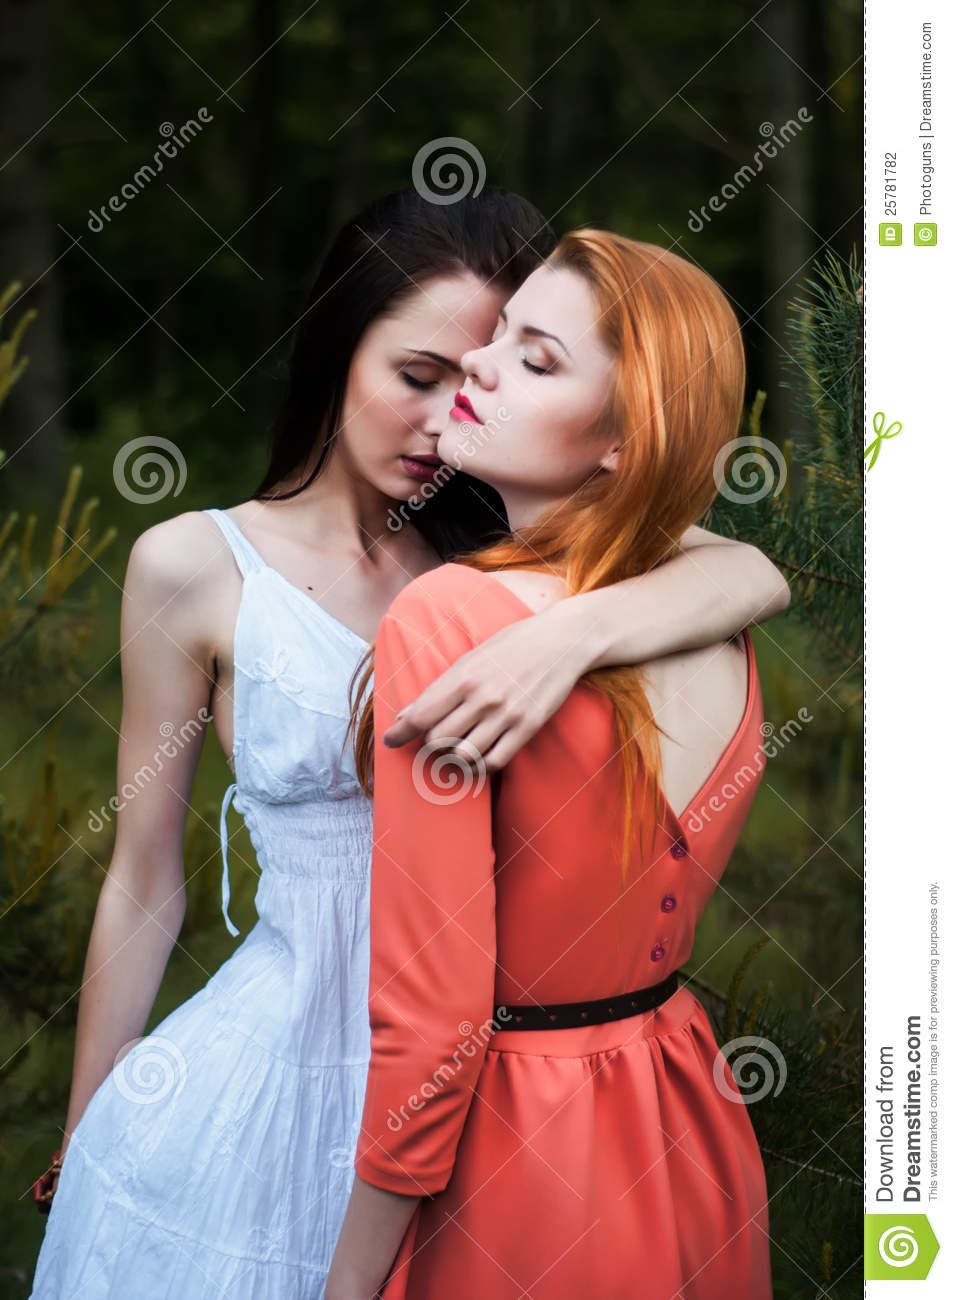 indiana single lesbian women A new study of american singles found that during sex with a familiar partner, men have the highest orgasm rates for women, orgasm occurrence is less predictable, with lesbian women experiencing orgasm more often than heterosexual or bisexual women.